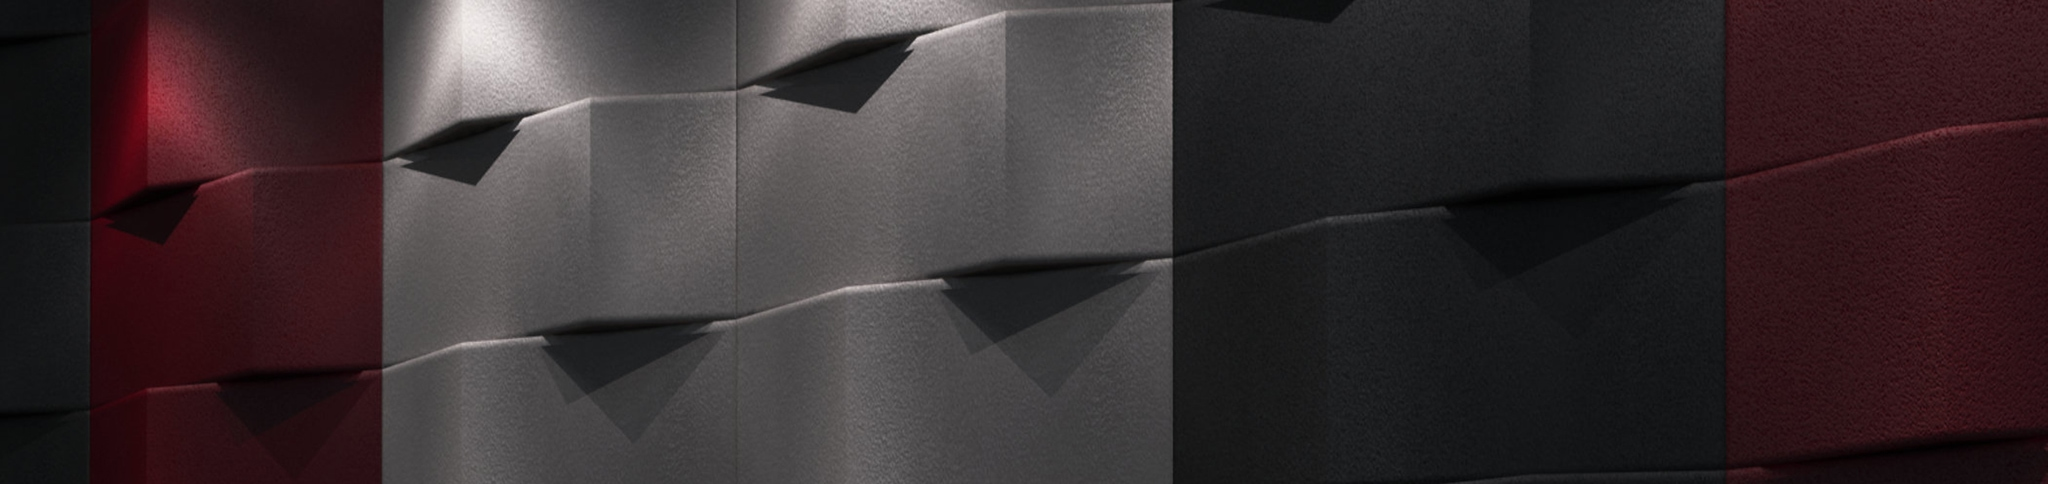 Artnovion Black & Red Acoustic Wall Panels